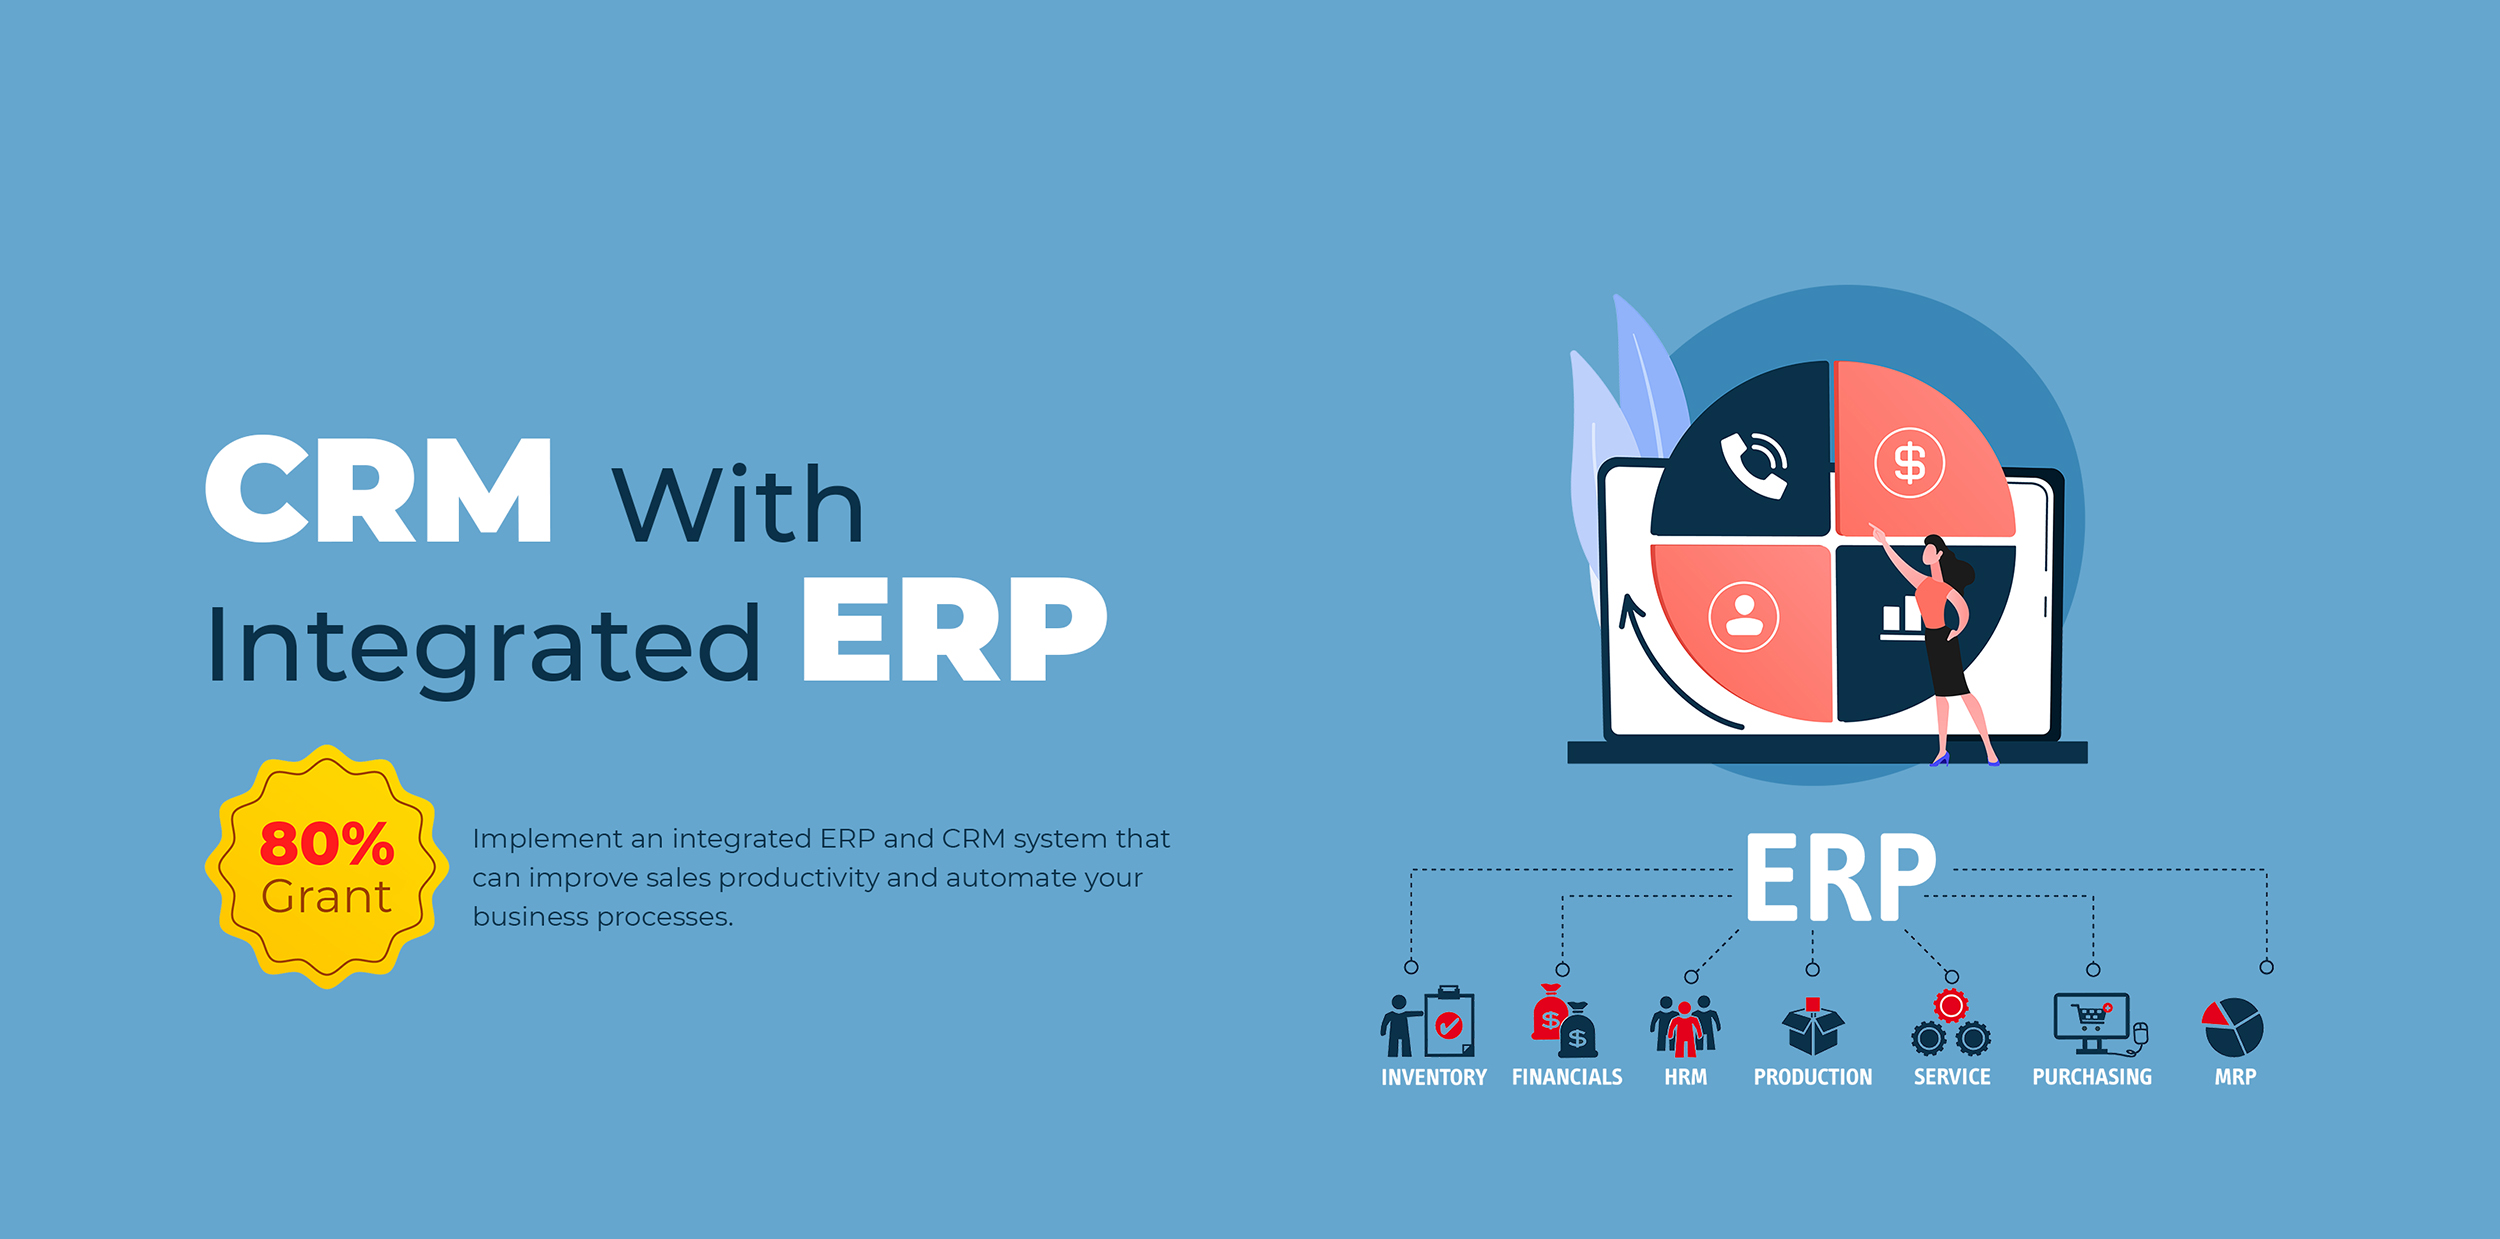 ERP with integrated CRM - PSG 80% Grant Singapore 1